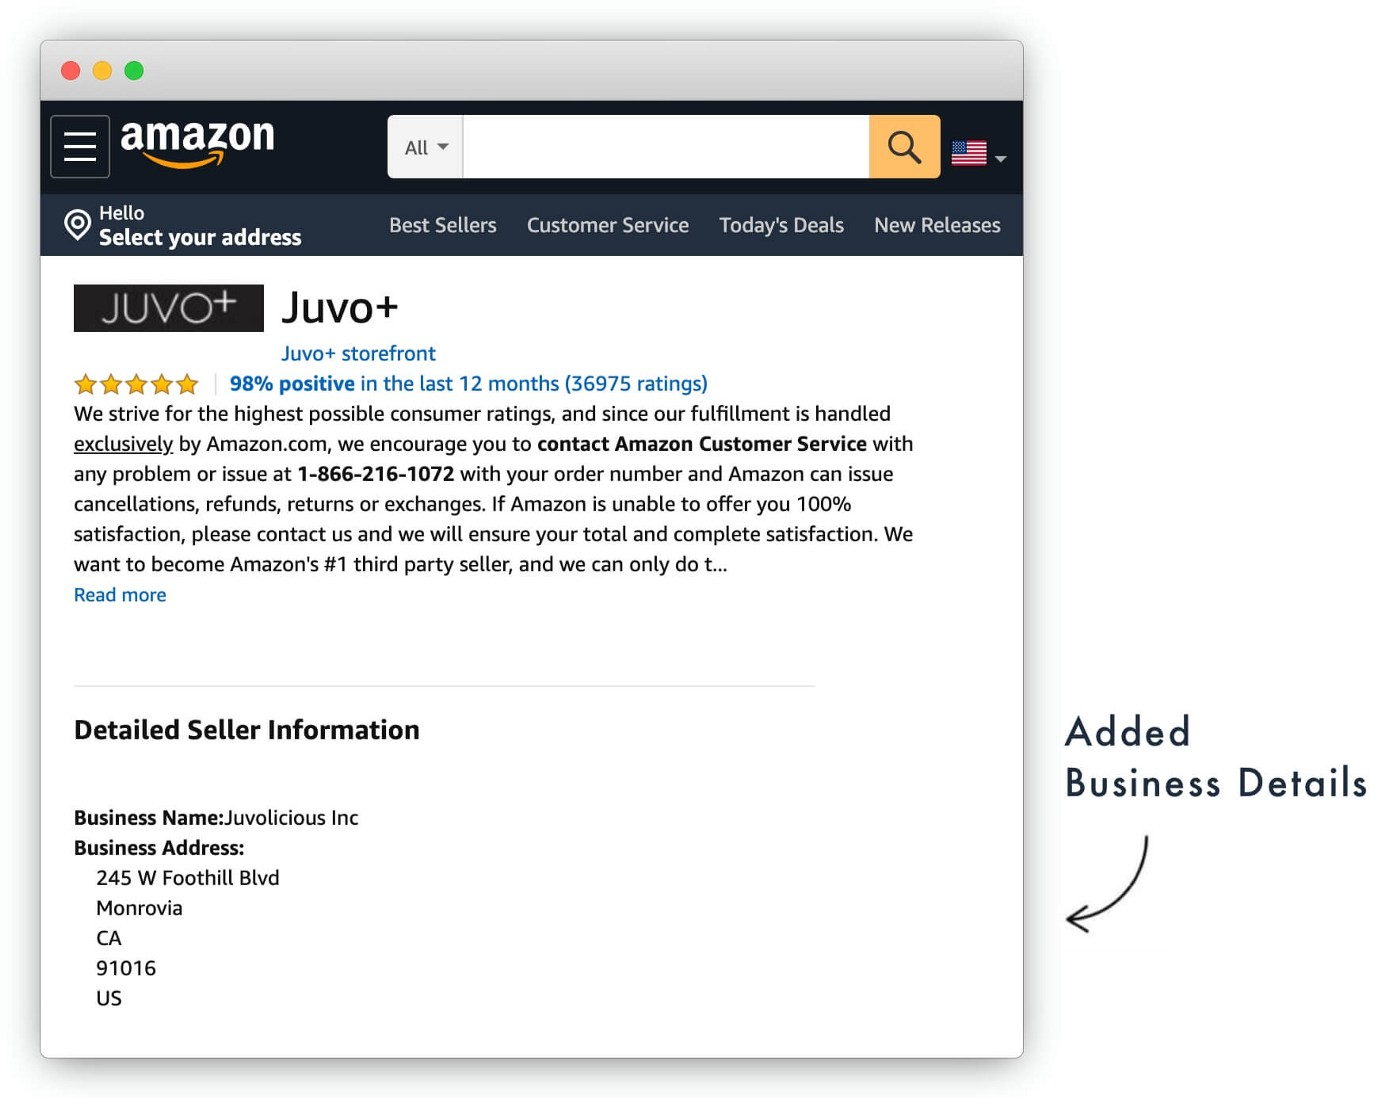 https://www.marketplacepulse.com/articles/amazon-now-lists-sellers-business-name-and-address